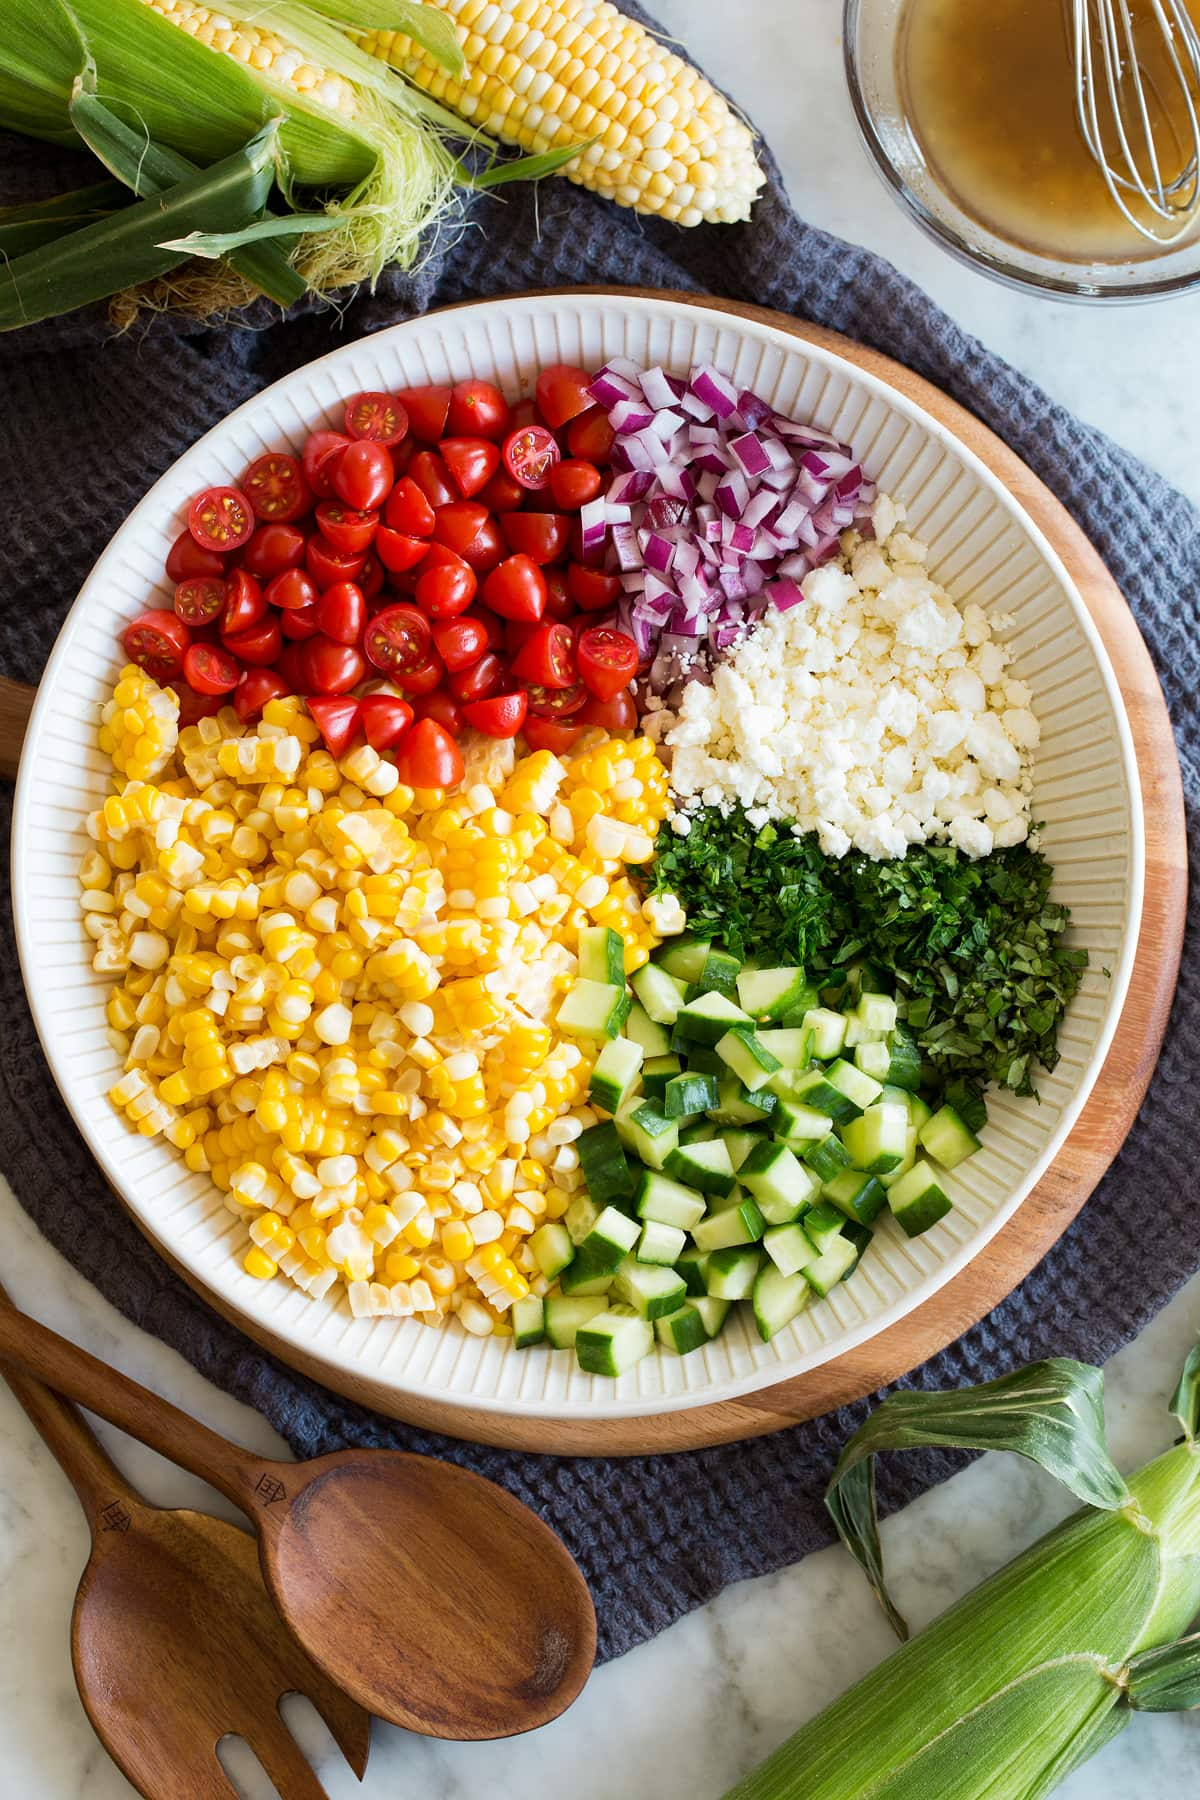 Photo: Corn salad ingredients shown divided into areas before tossing in a bowl. It is shown from above.